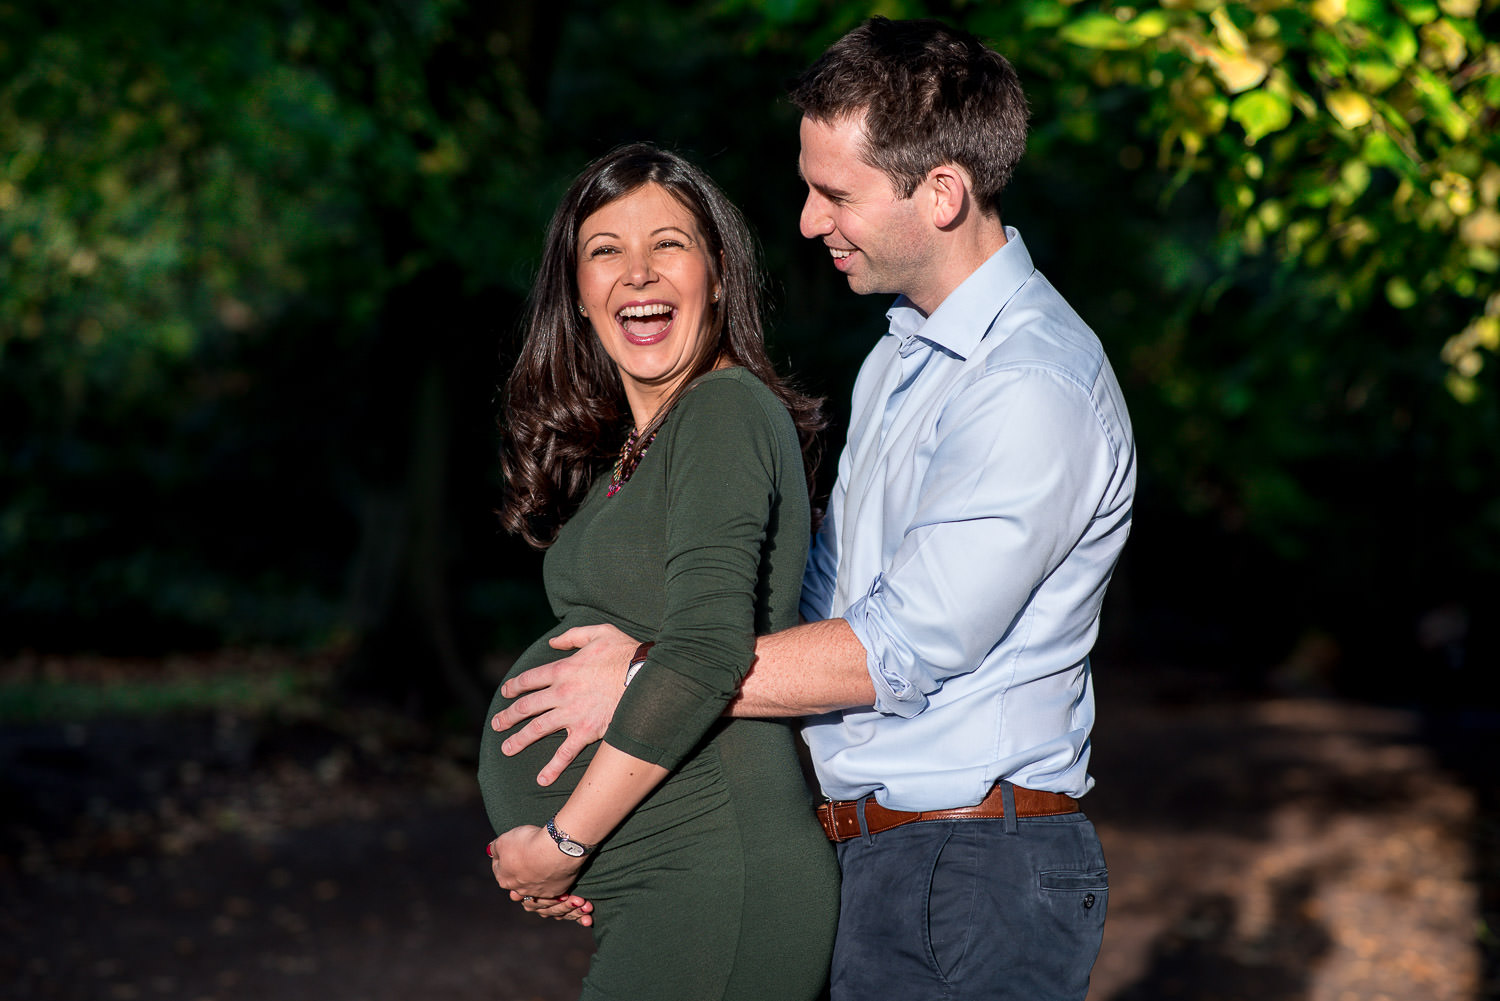 future parent laughing on maternity photo shoot